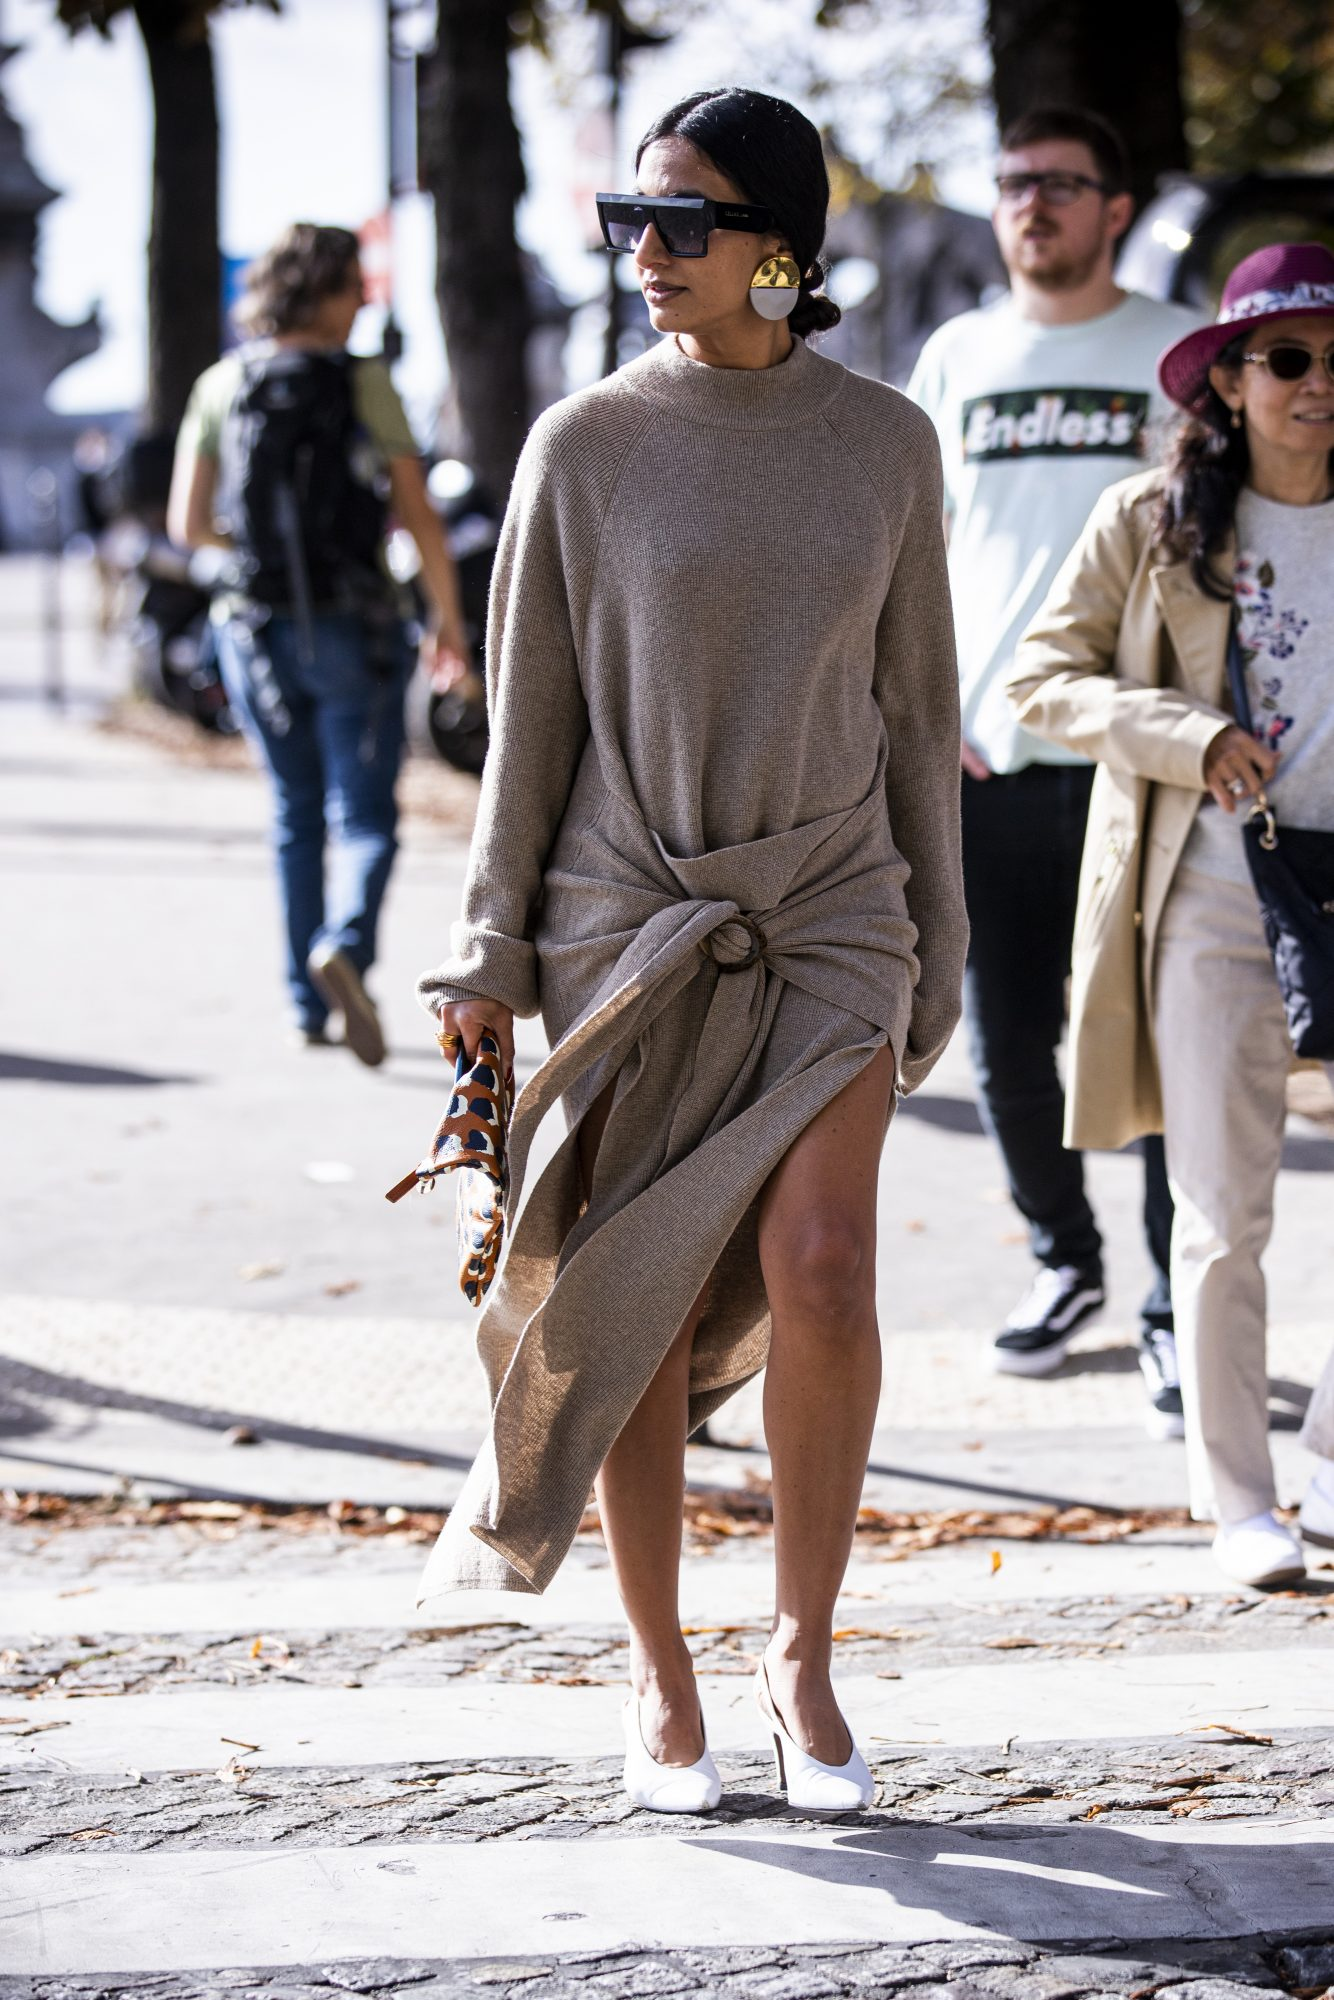 Sweaterdress outfit idea